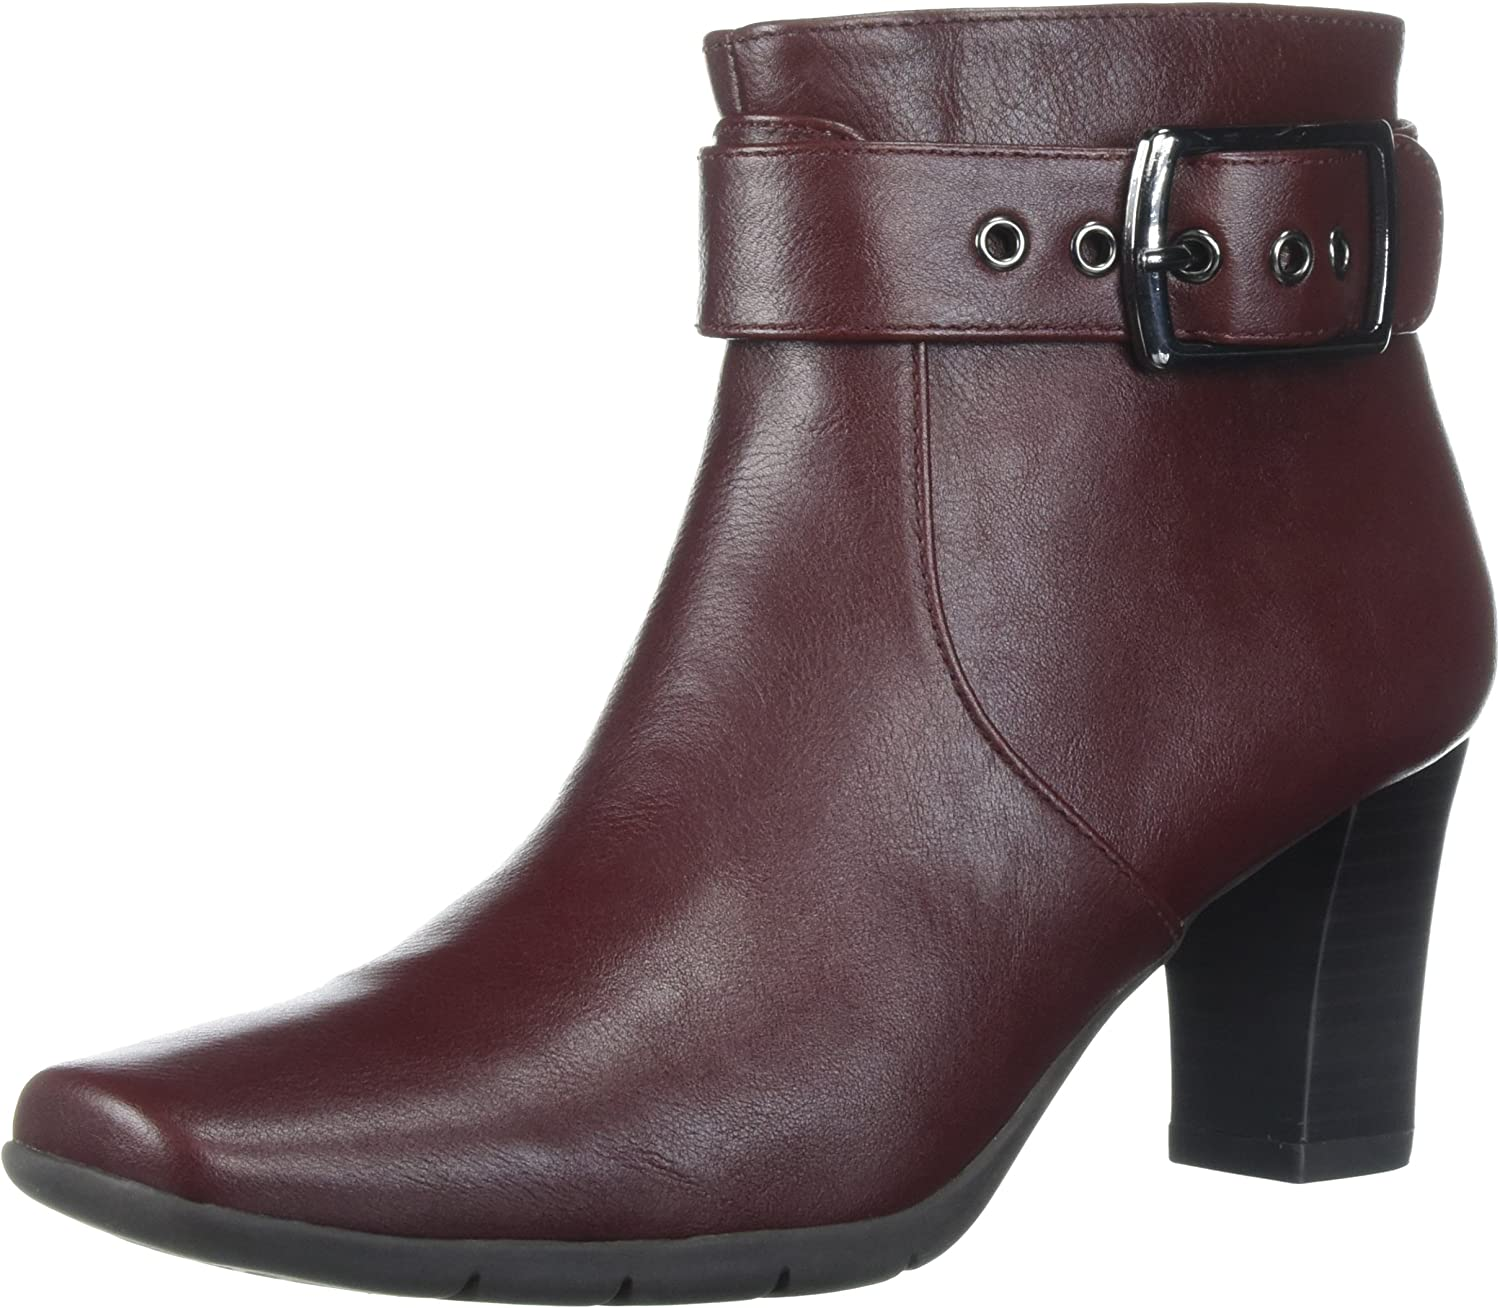 Aerosoles Womens Monorail Ankle Boot